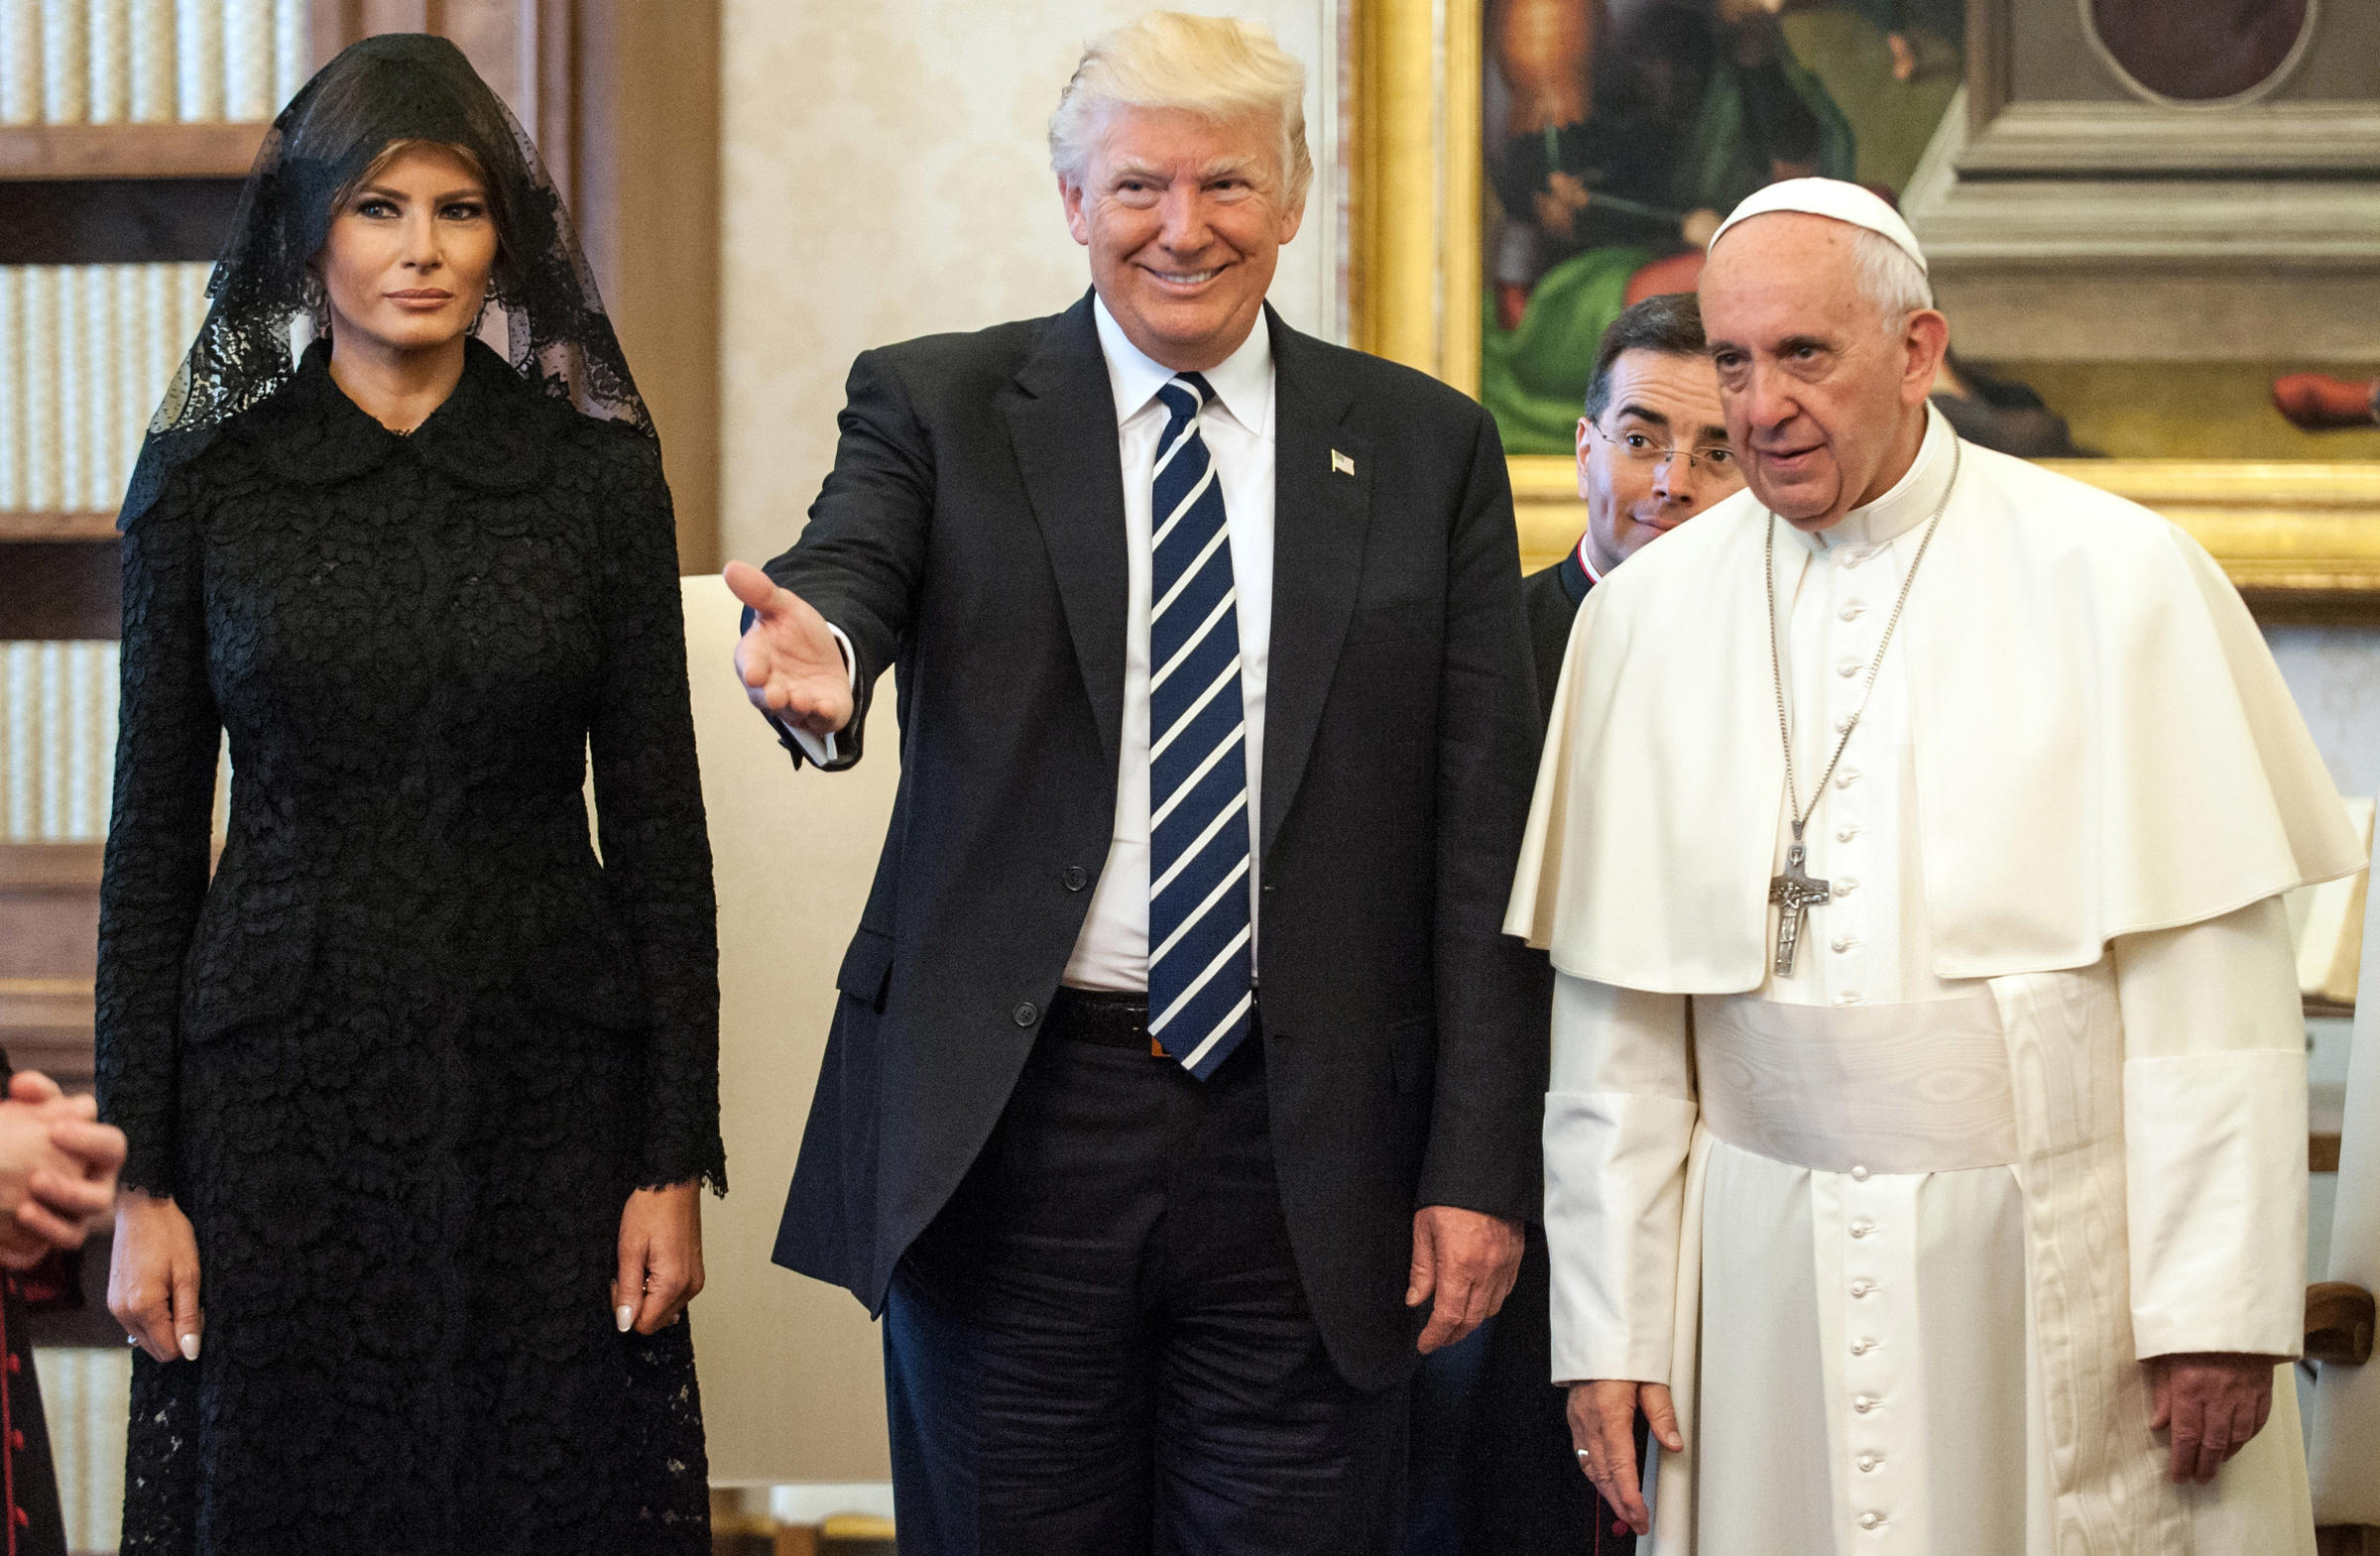 Pope Francis Attains Meme Godliness In Meeting With Donald Trump